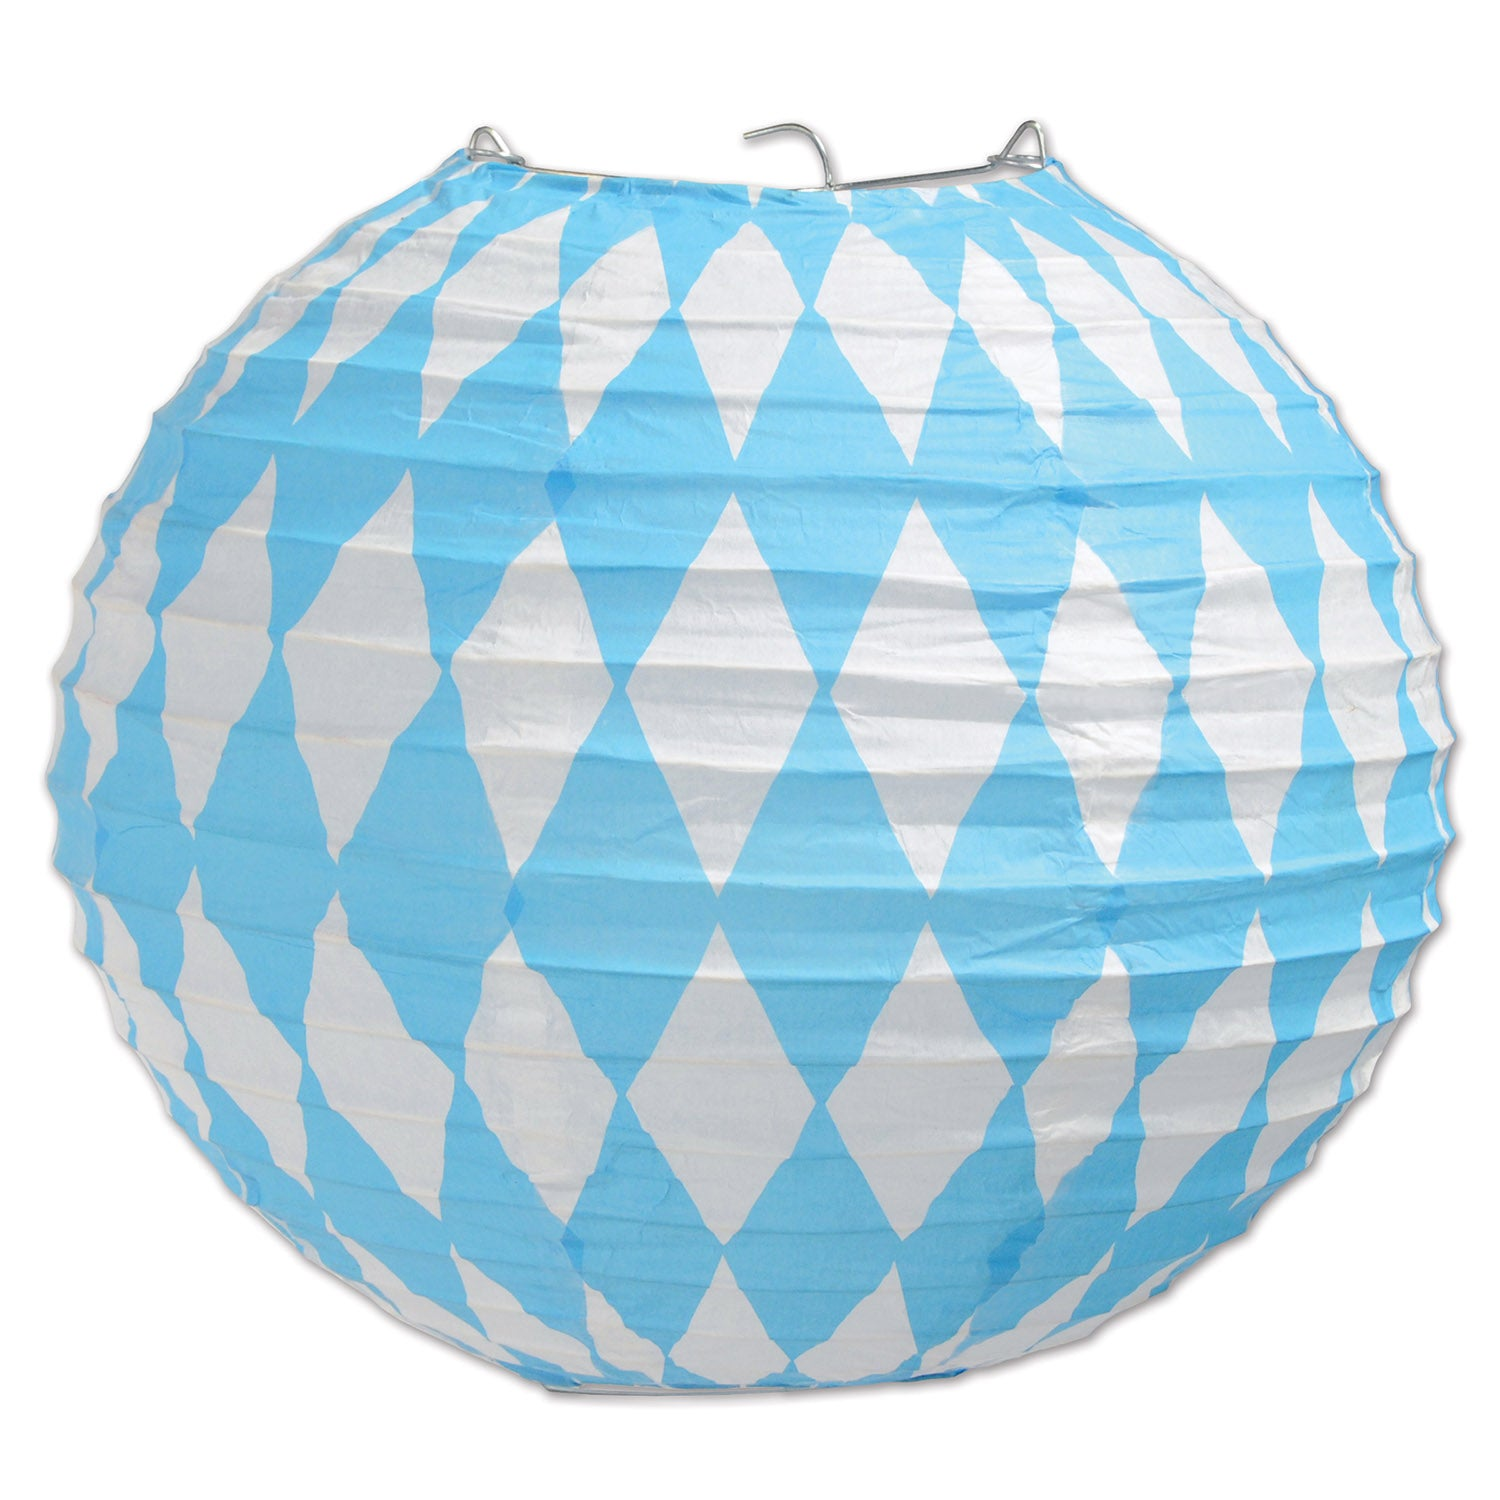 Oktoberfest Paper Lanterns (3/Pkg) by Beistle - Oktoberfest Theme Decorations